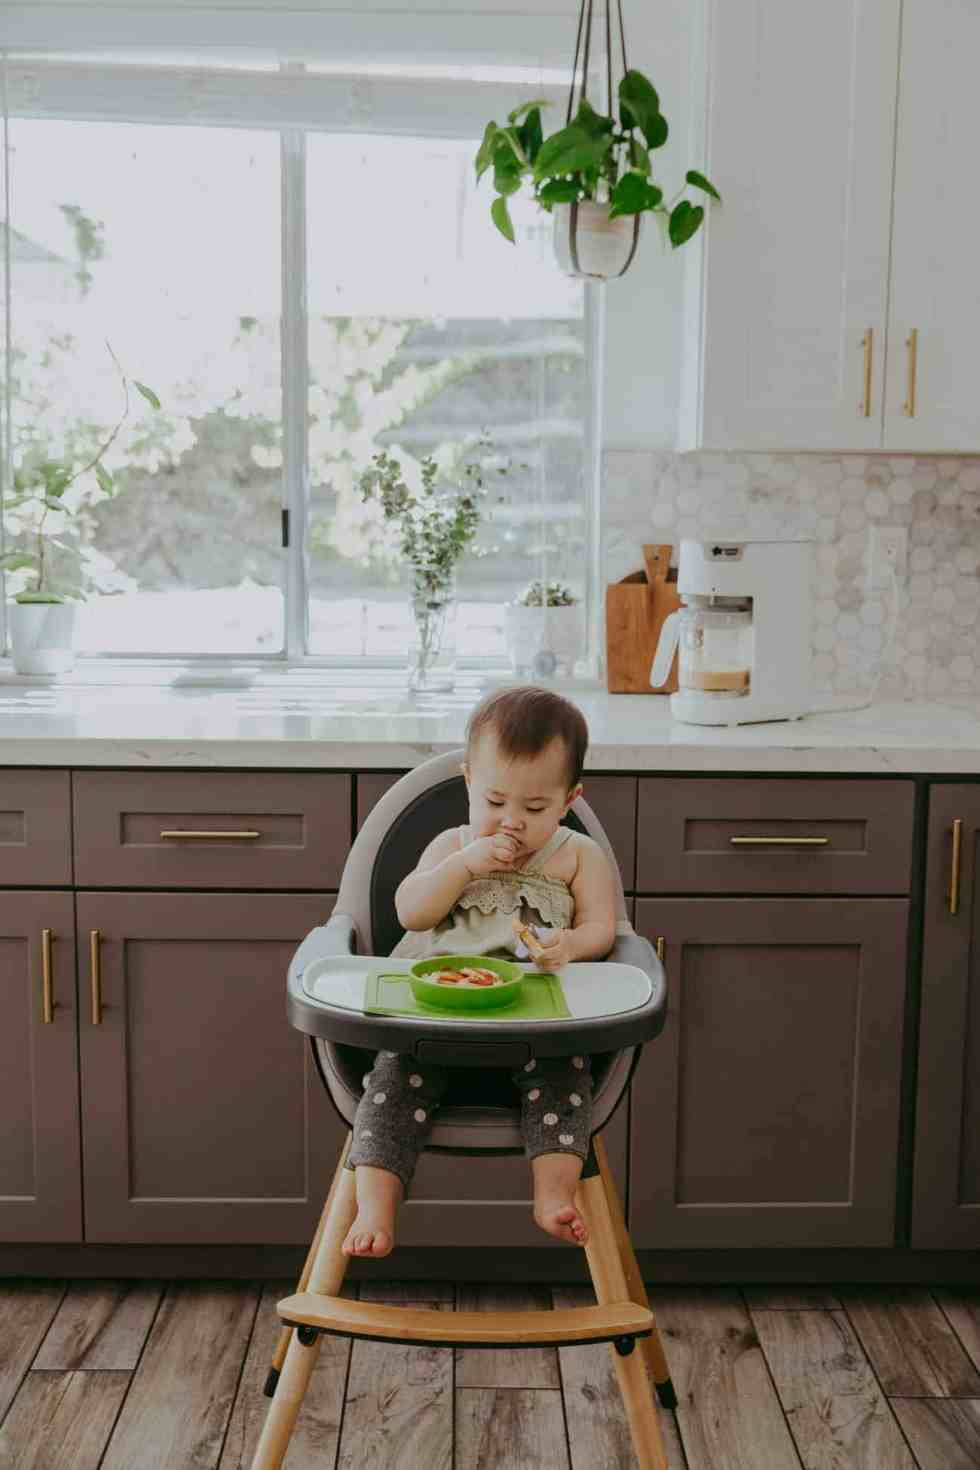 baby eating food in a gray and white high chair